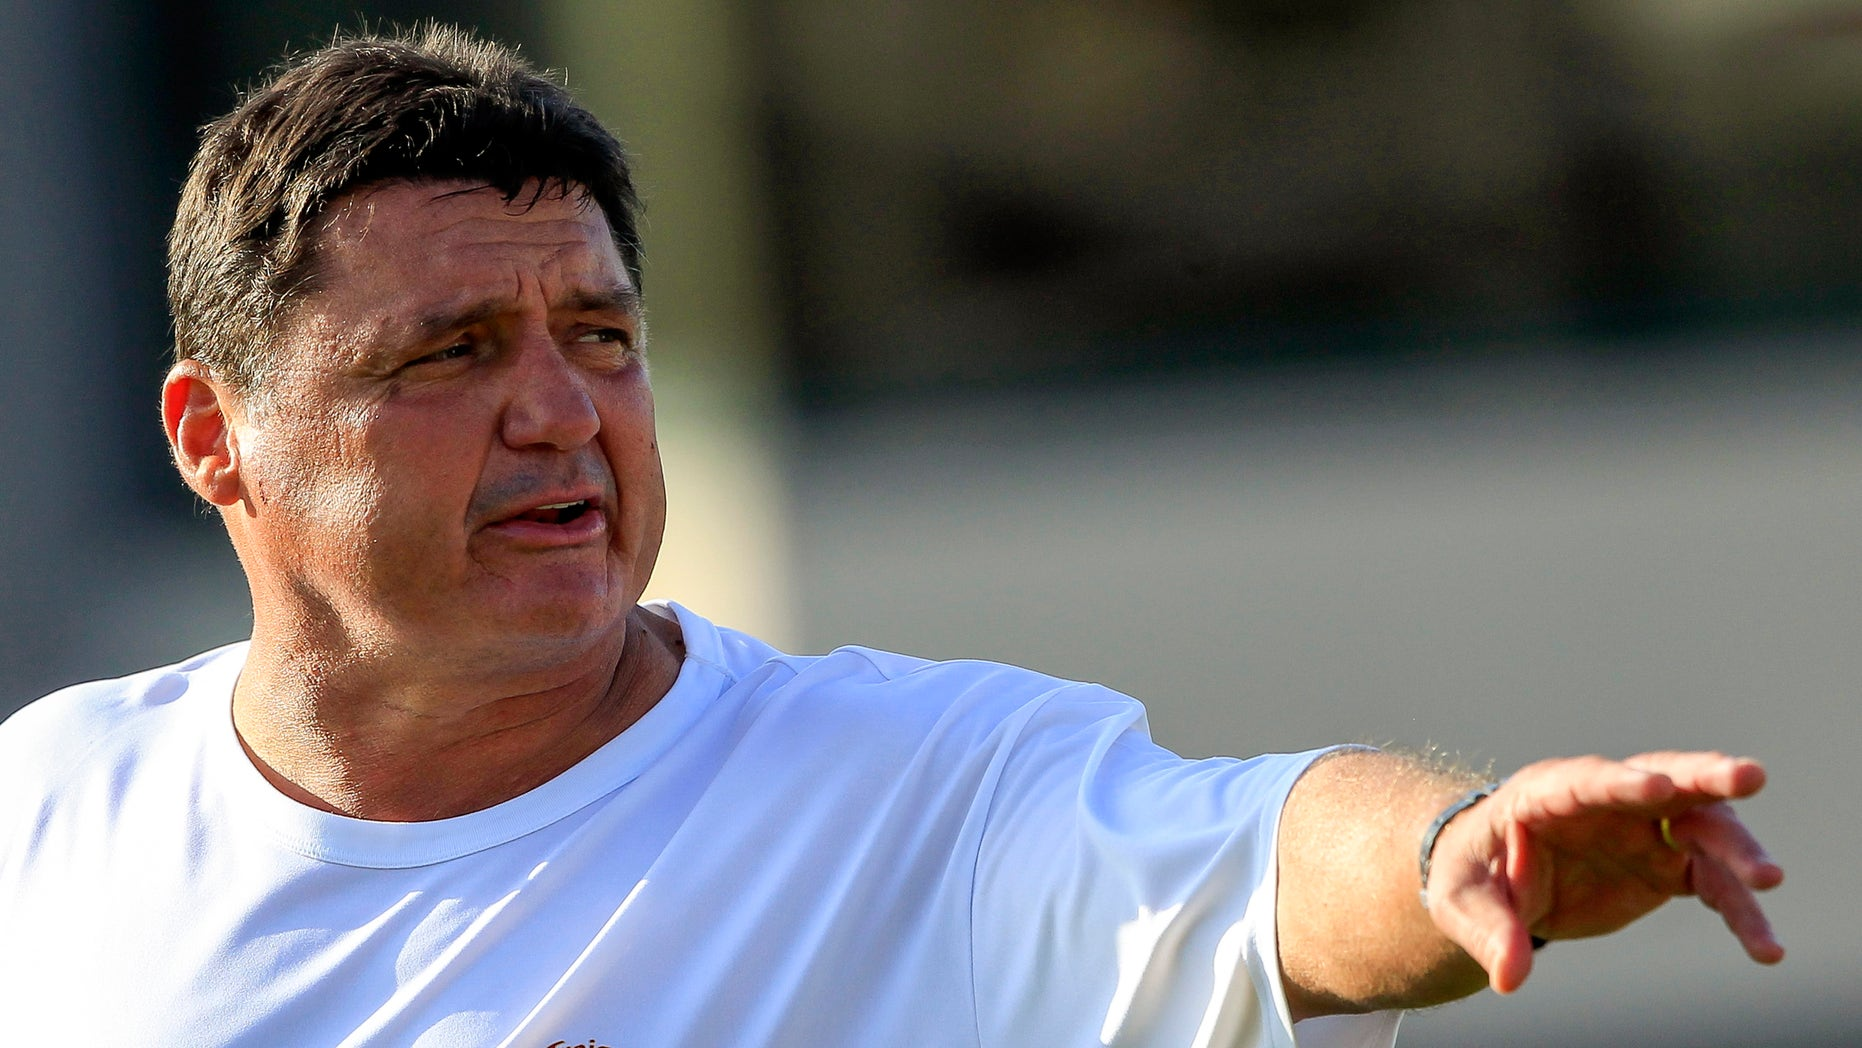 FILE- In this Oct. 2, 2013, file photo, Southern California's interim football coach Ed Orgeron guides his players during NCAA college football practice in Lo Angeles. The former Ole Miss coach welcomes the opportunity of his interim job, and the Trojans say he's injecting energy back into a weary team. (AP Photo/Damian Dovarganes, File)